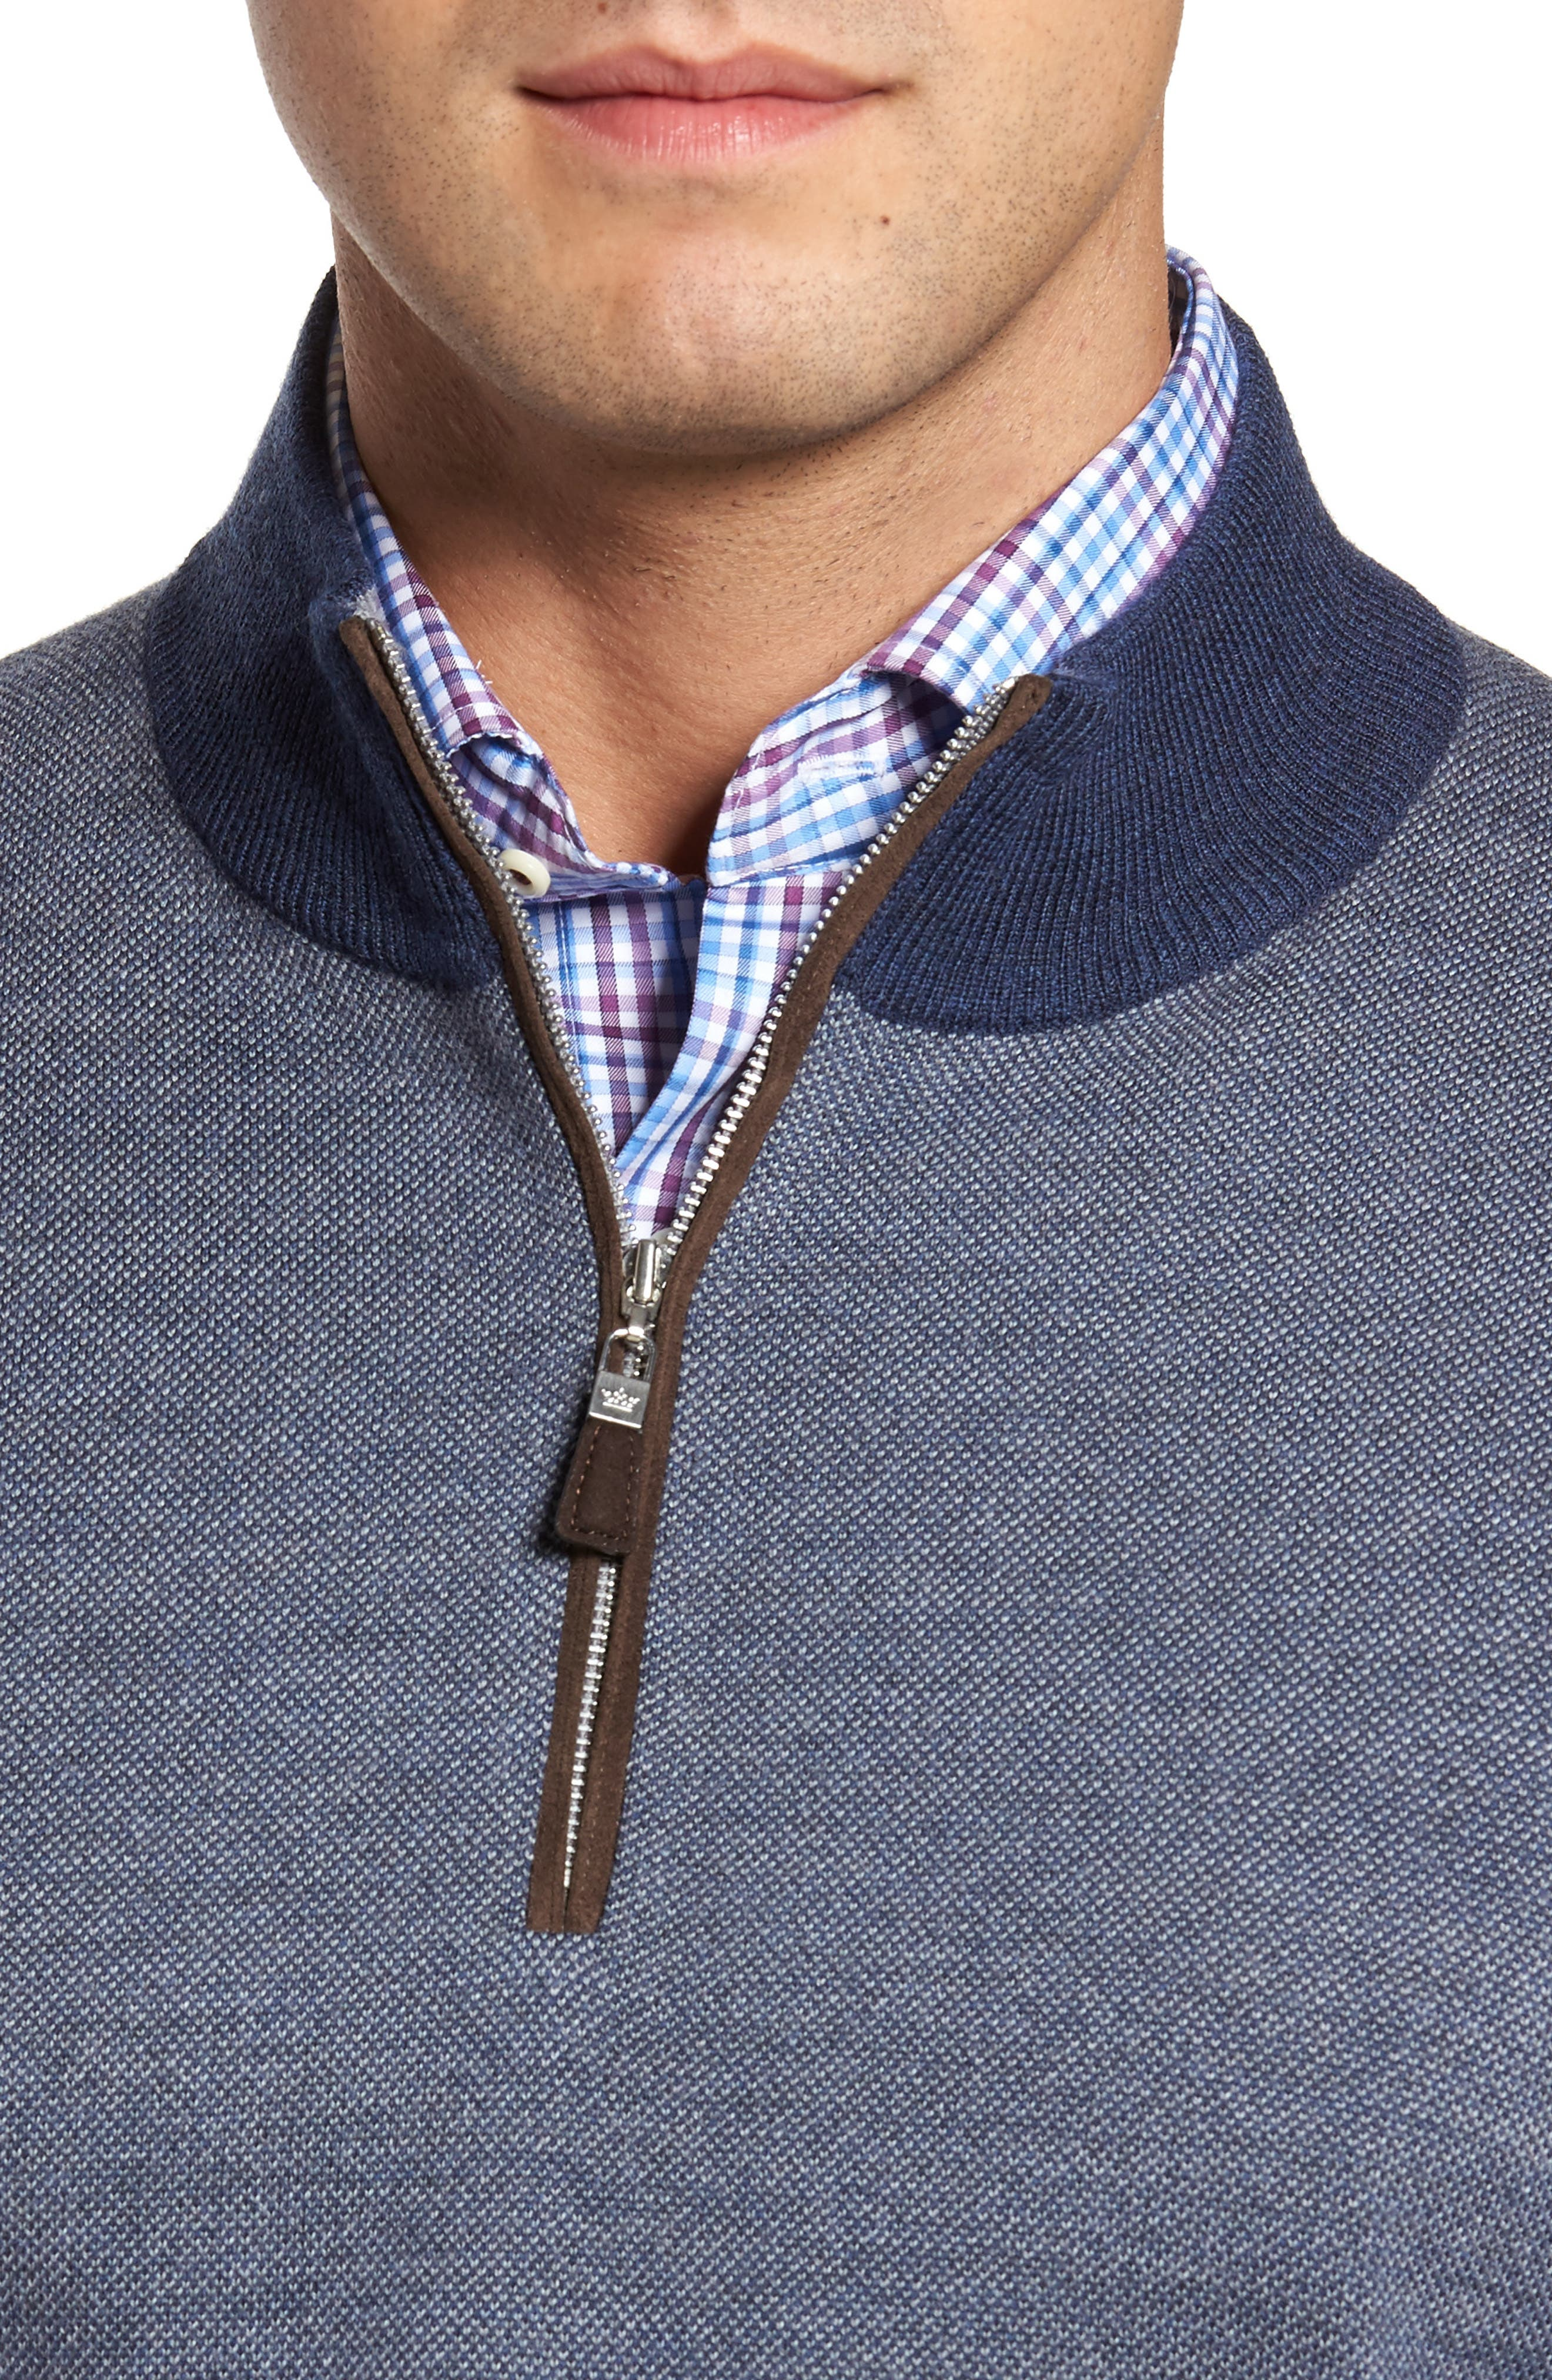 Quarter Zip Wool Pullover,                             Alternate thumbnail 4, color,                             415